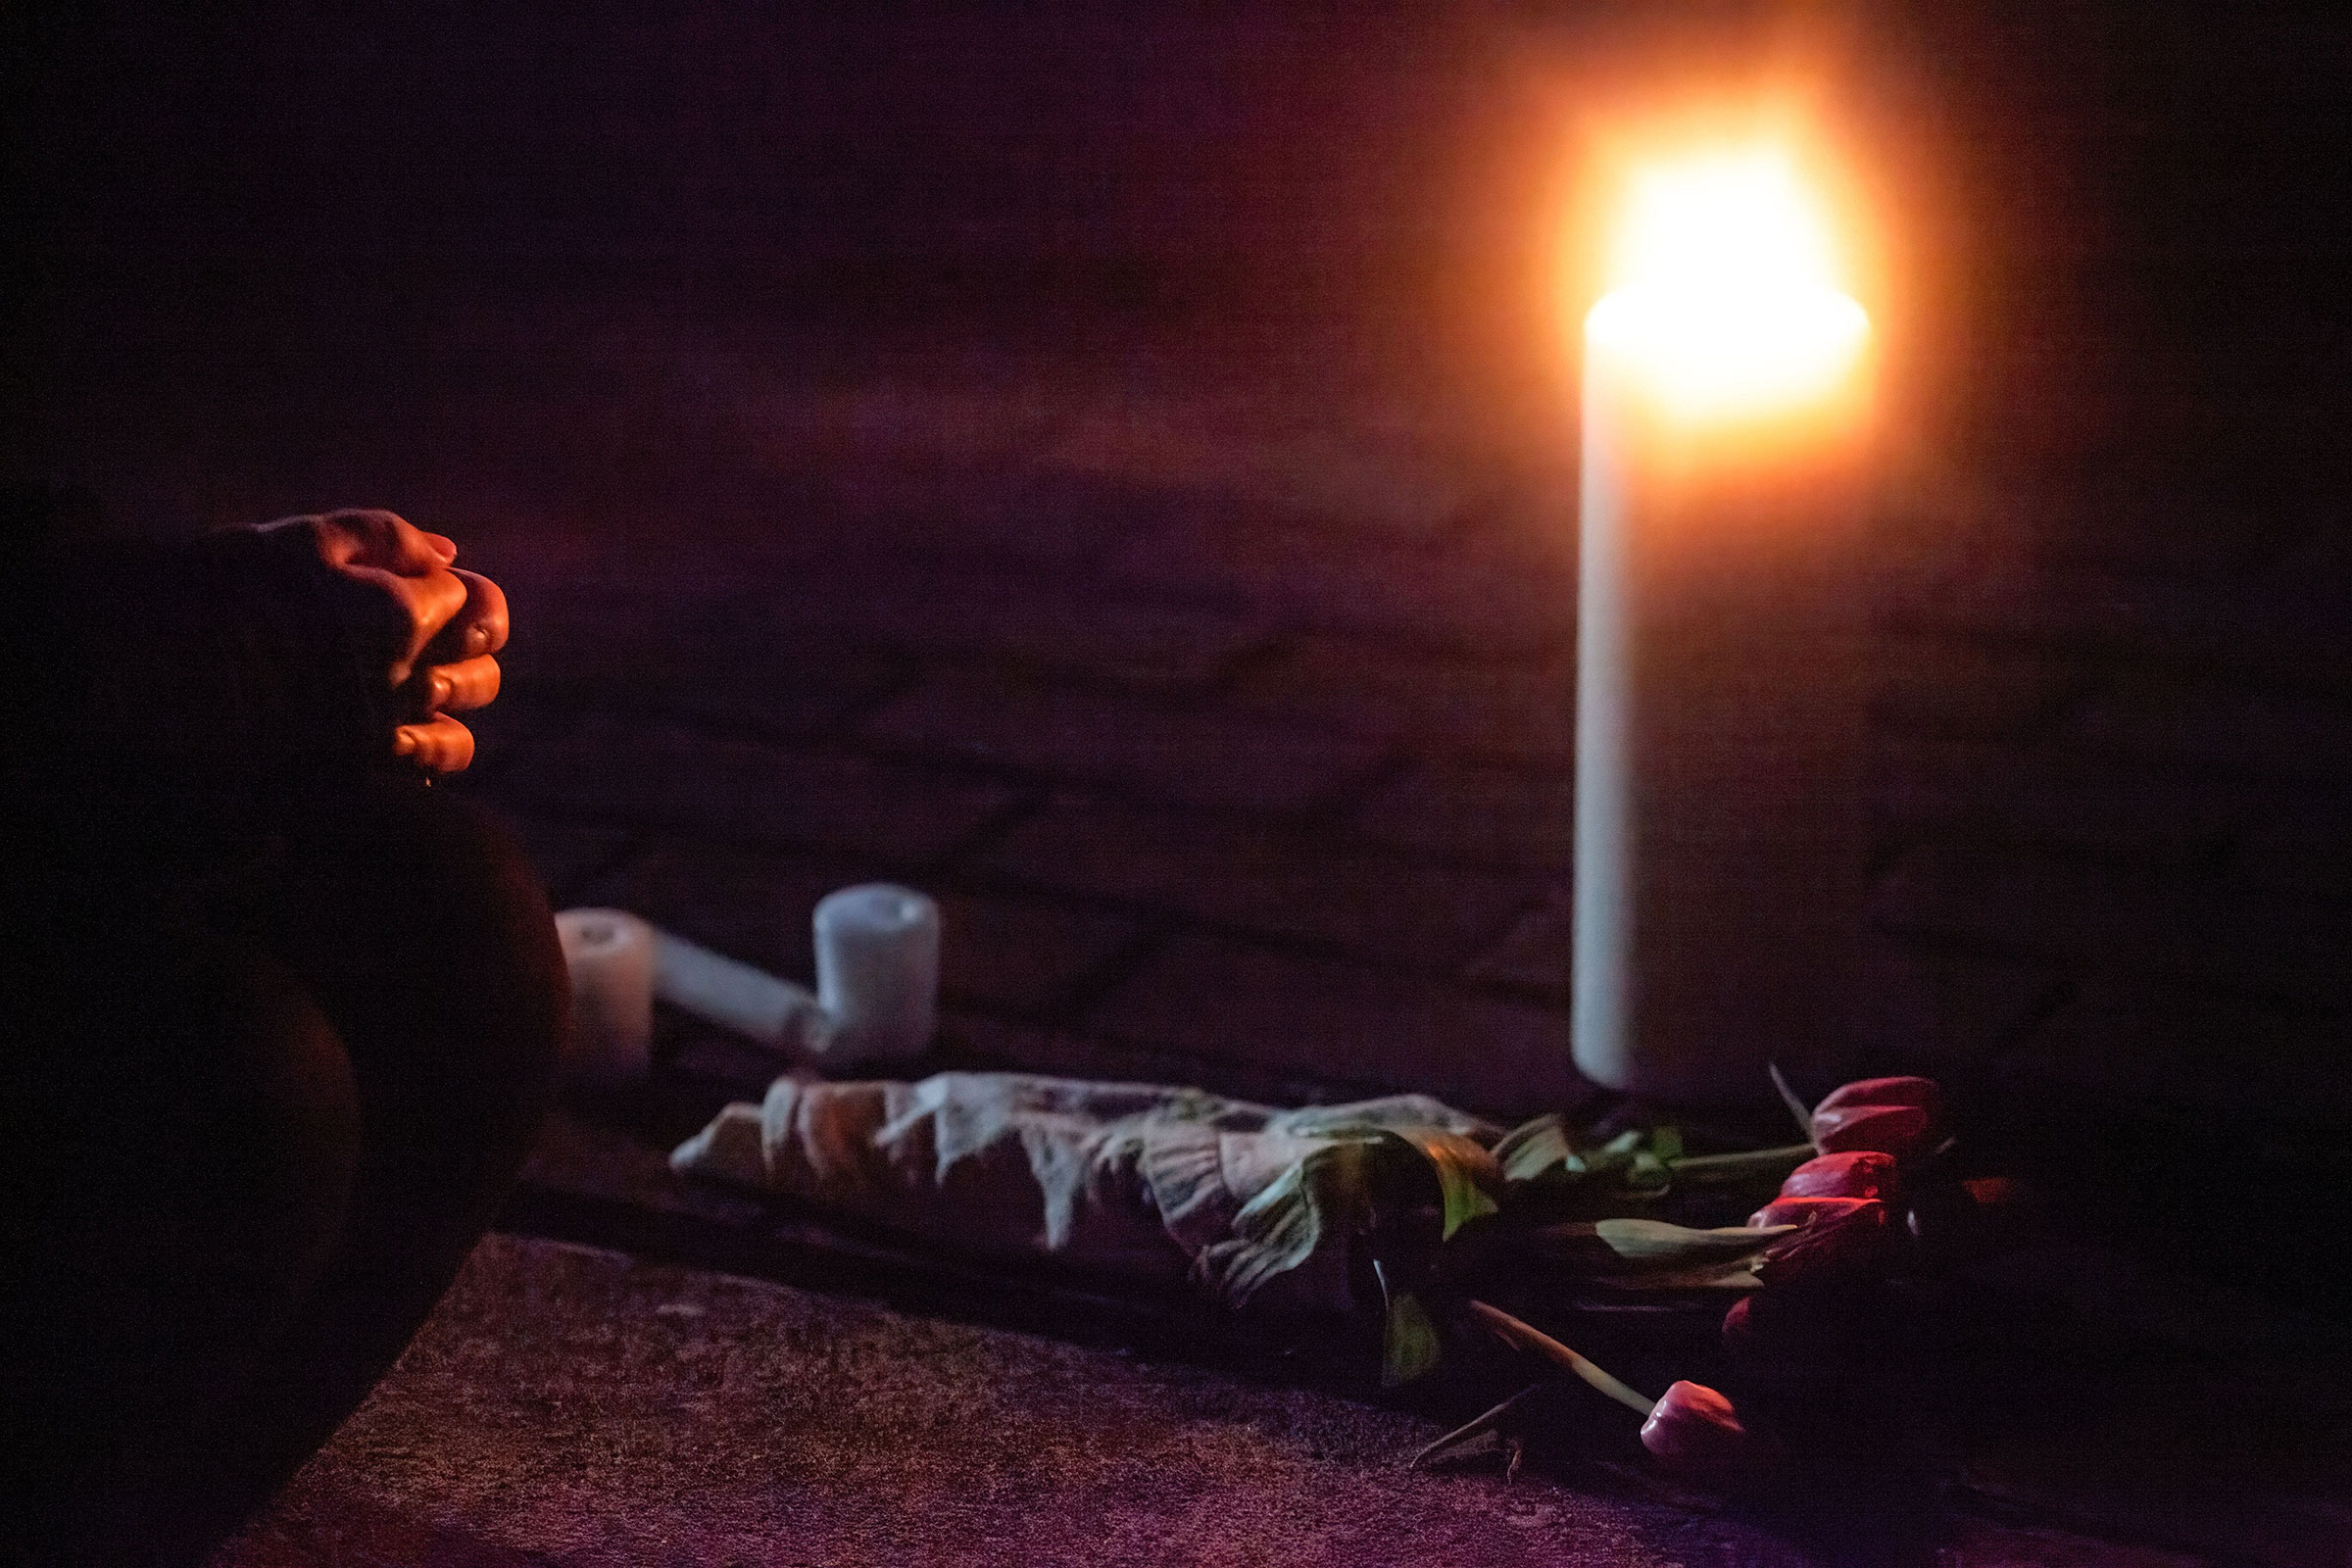 An attendee of a vigil kneels in front of a candle and flowers in memory of those who were killed in the shooting in Atlanta, on March 20, 2021.